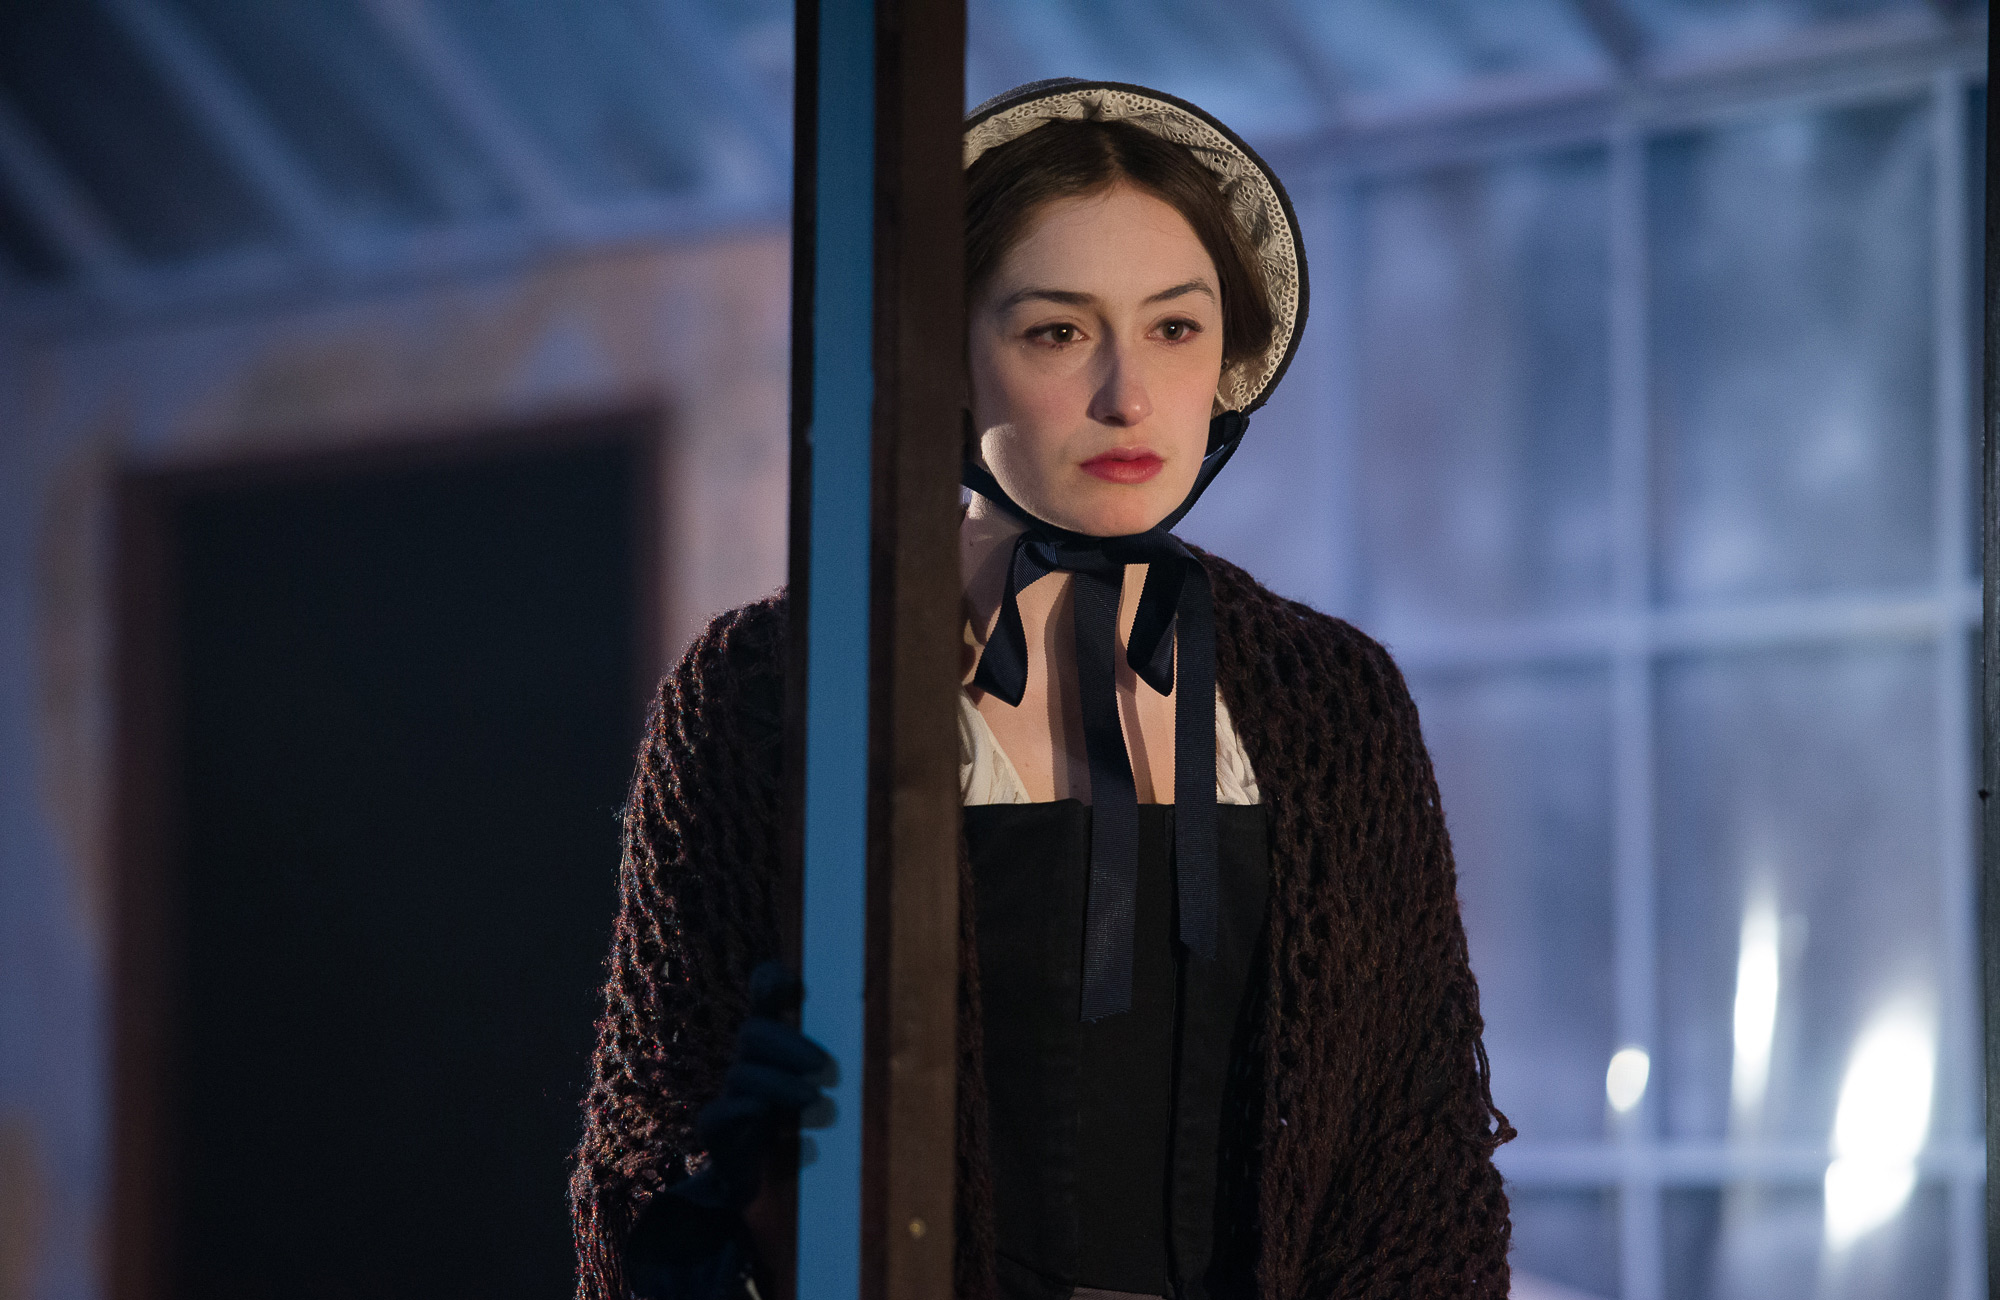 Therese Raquin has commenced its tour around Australia!